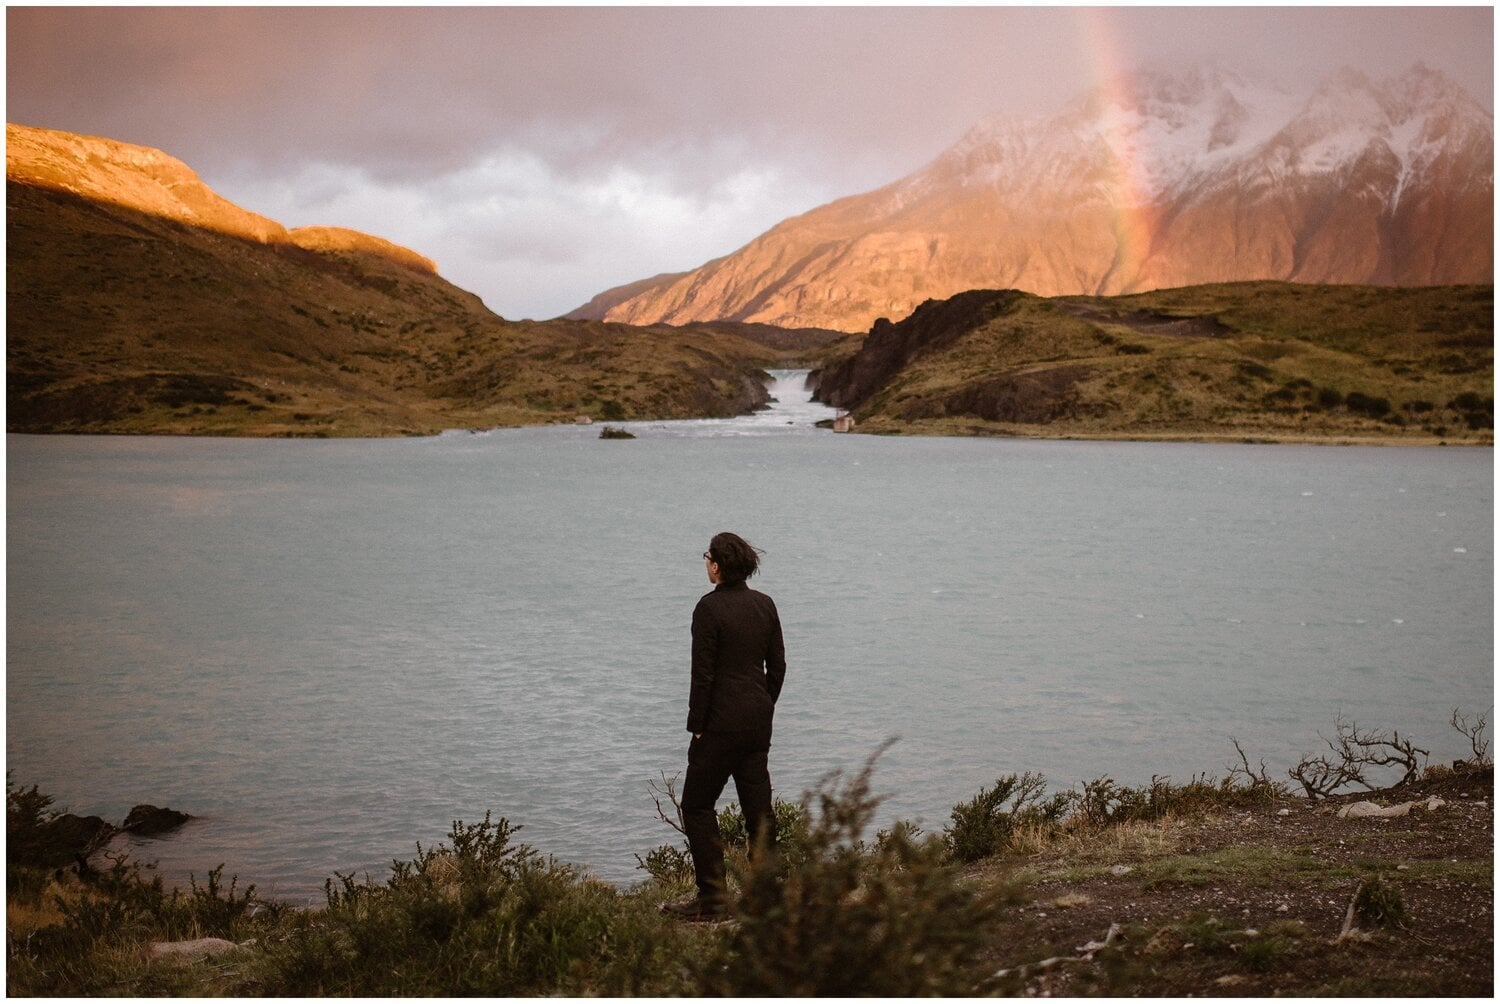 Woman standing in front of a Patagonia landscape.